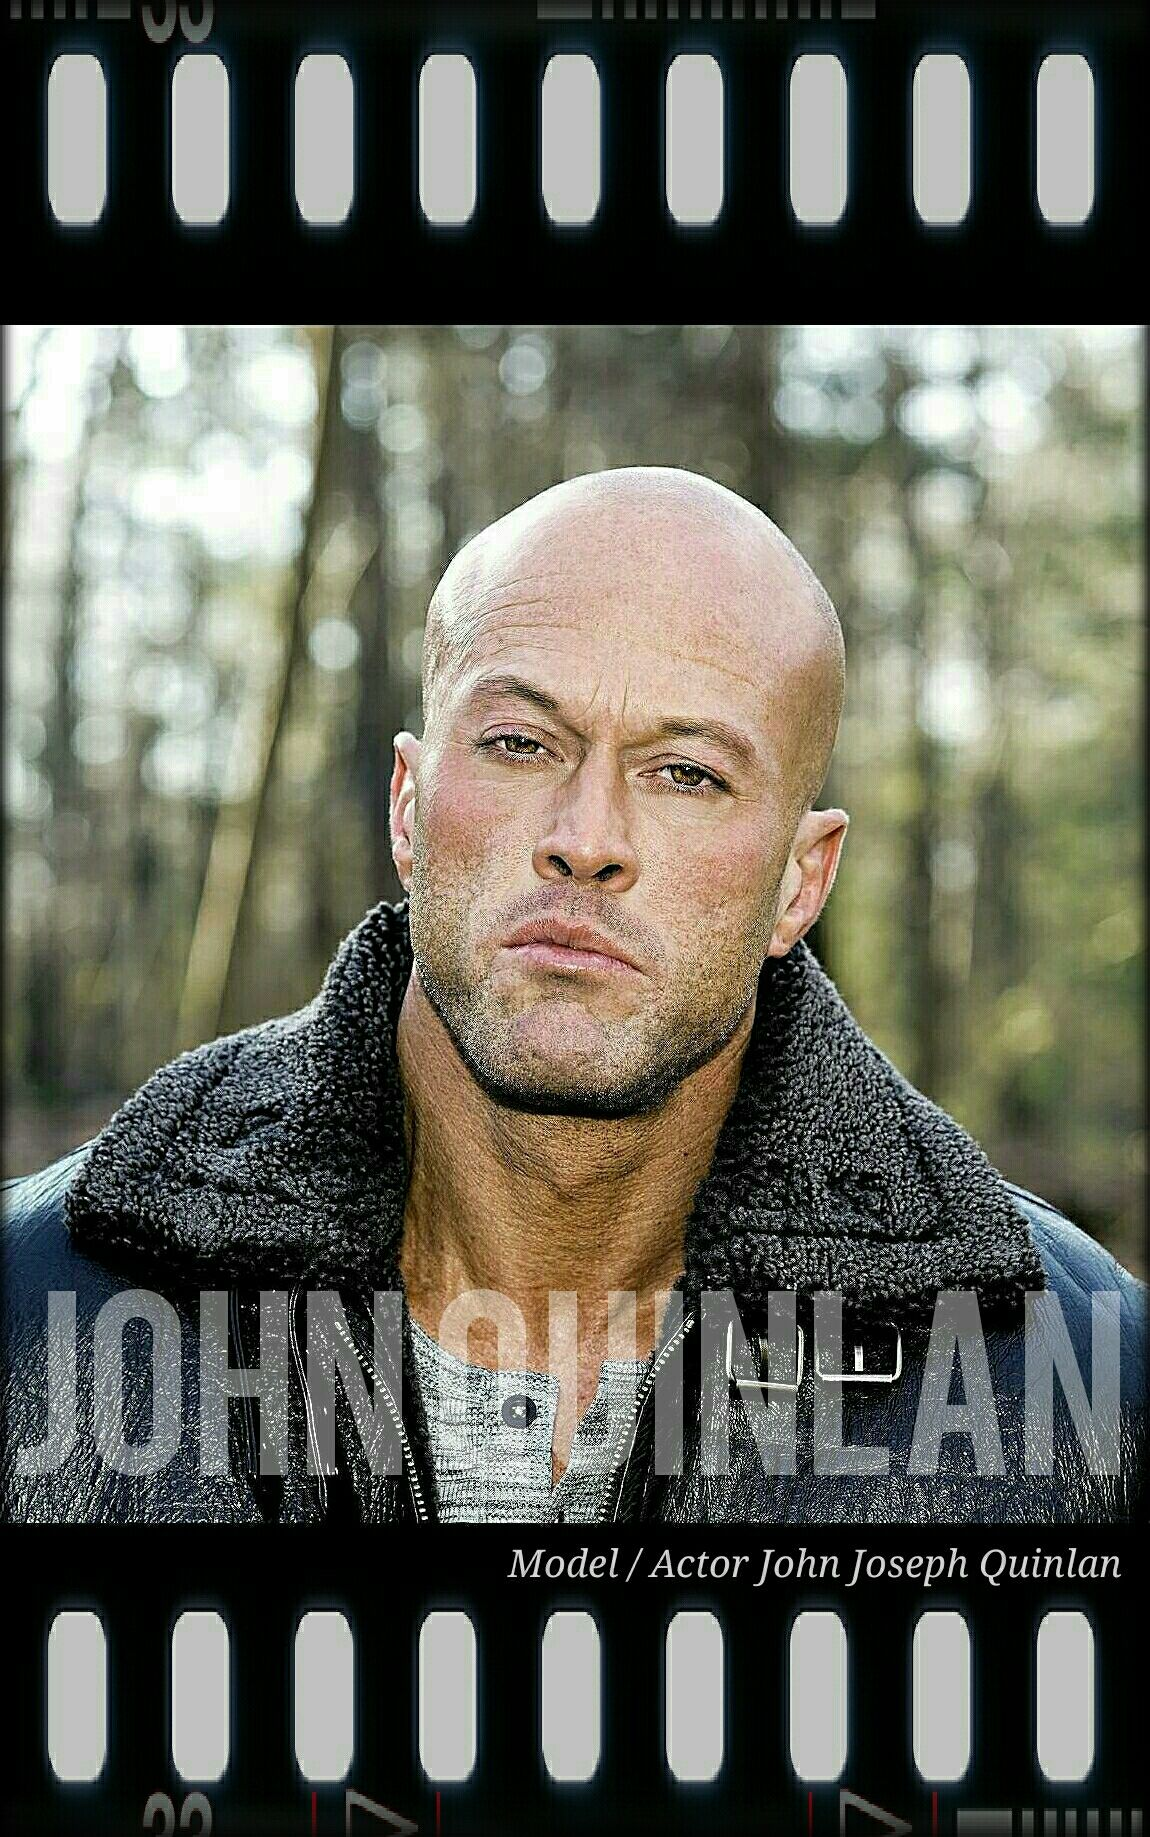 Model & Actor John Joseph Quinlan Bad Boy Leather Jacket Poster 2017 #JohnQuinlan